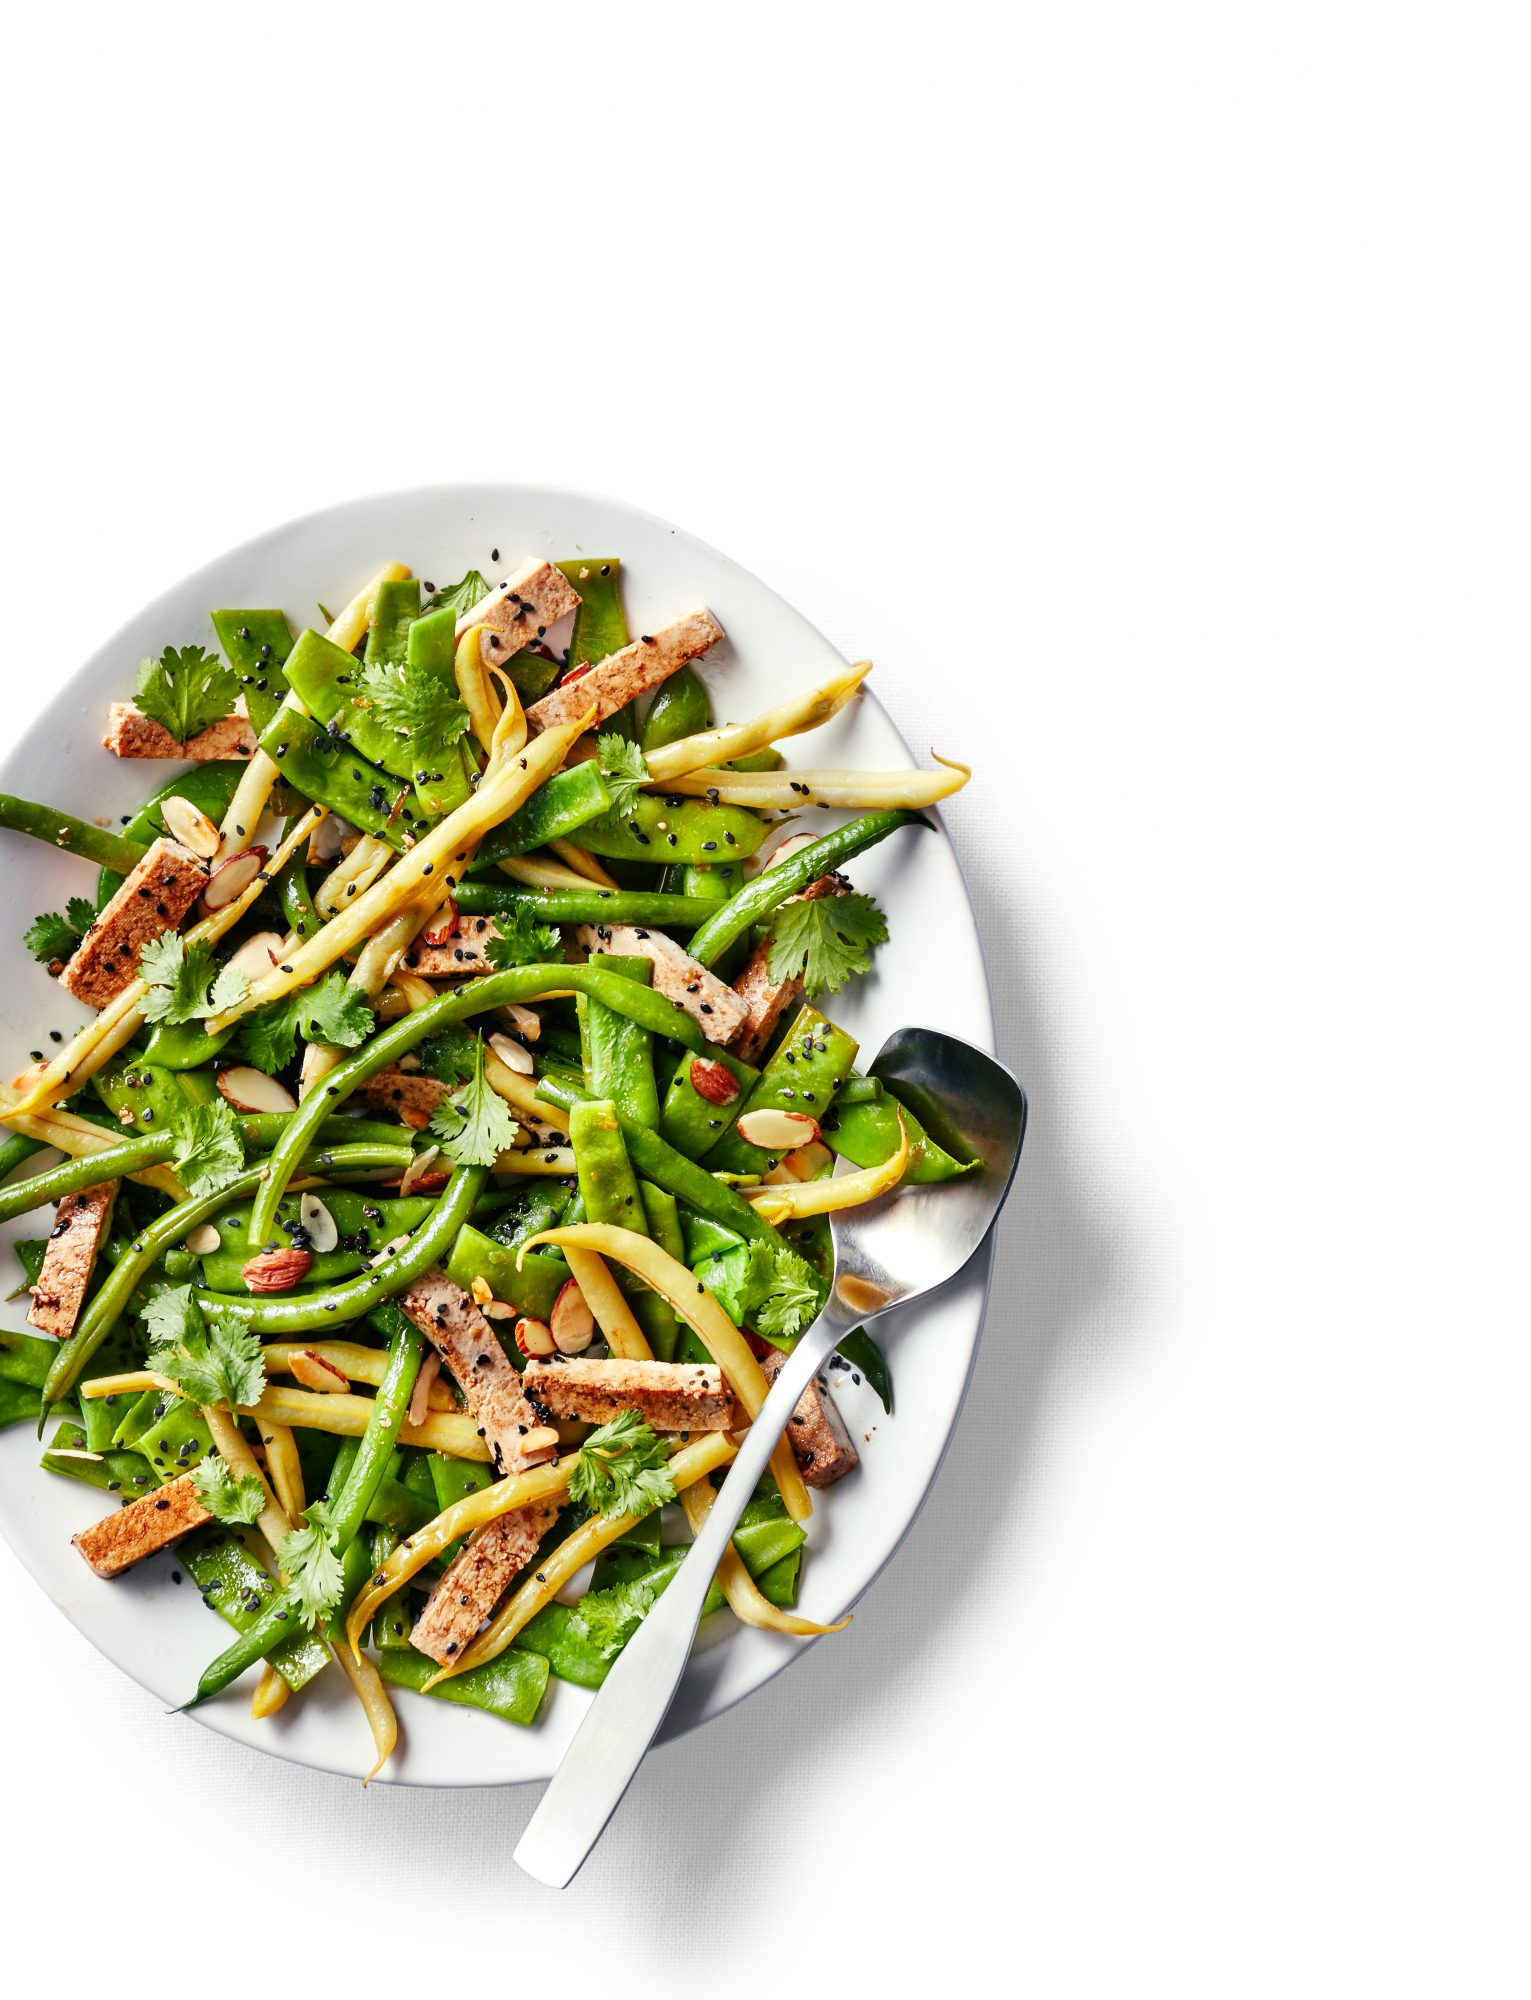 Pole Bean Salad with Ginger-Soy Tofu